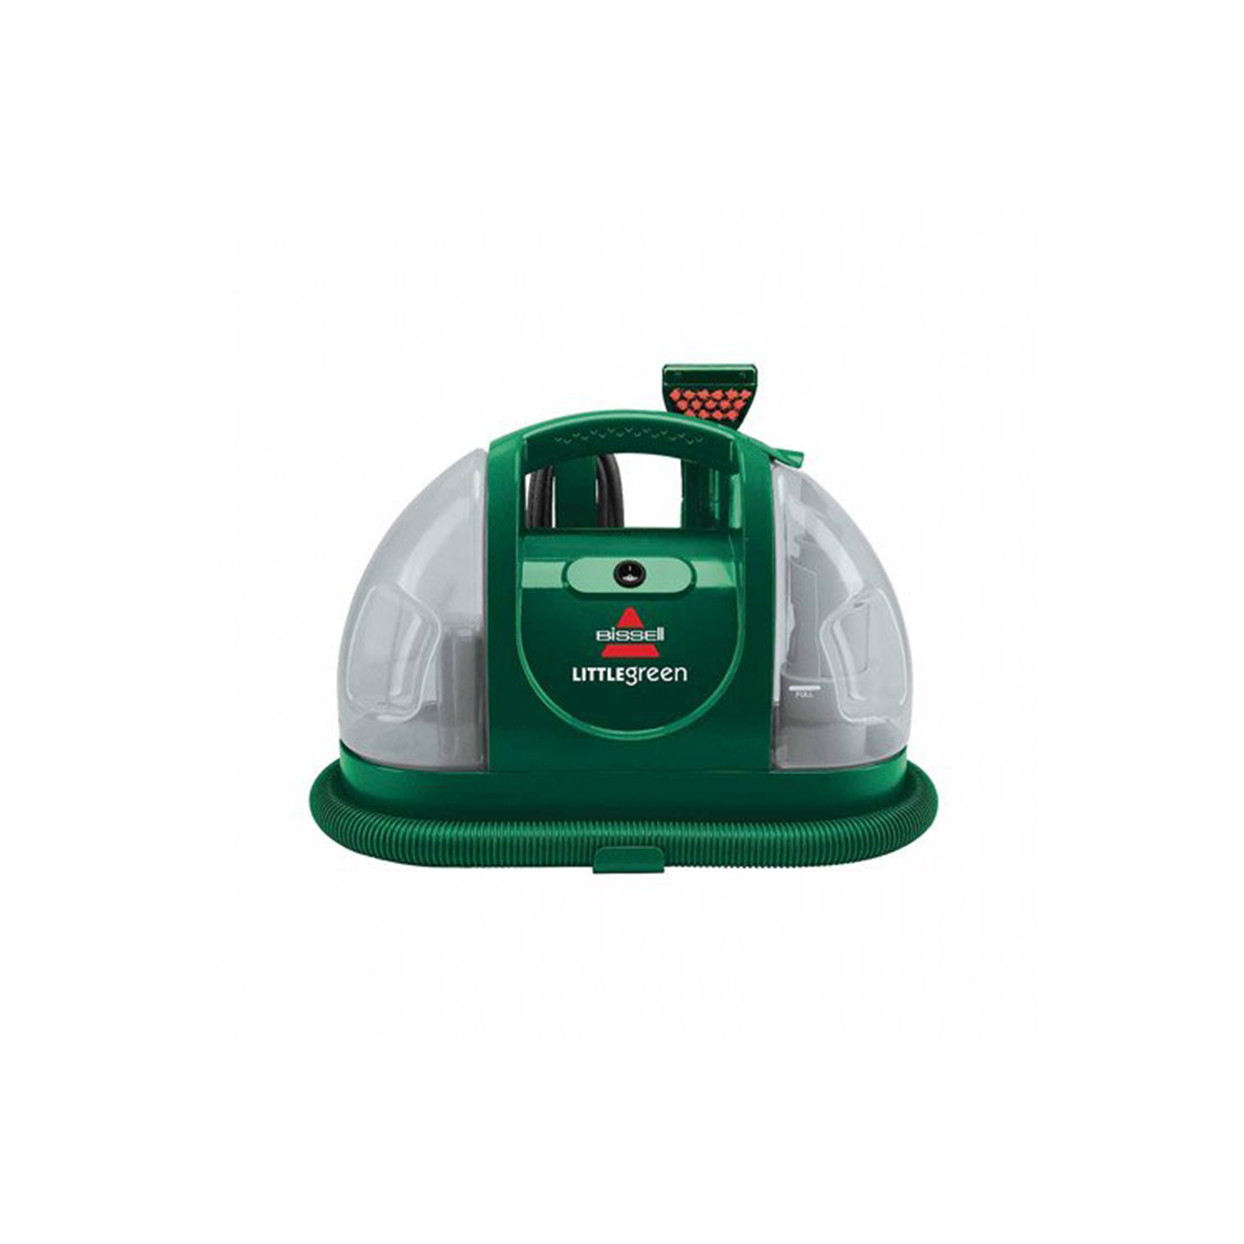 bissell little green portable spot cleaner